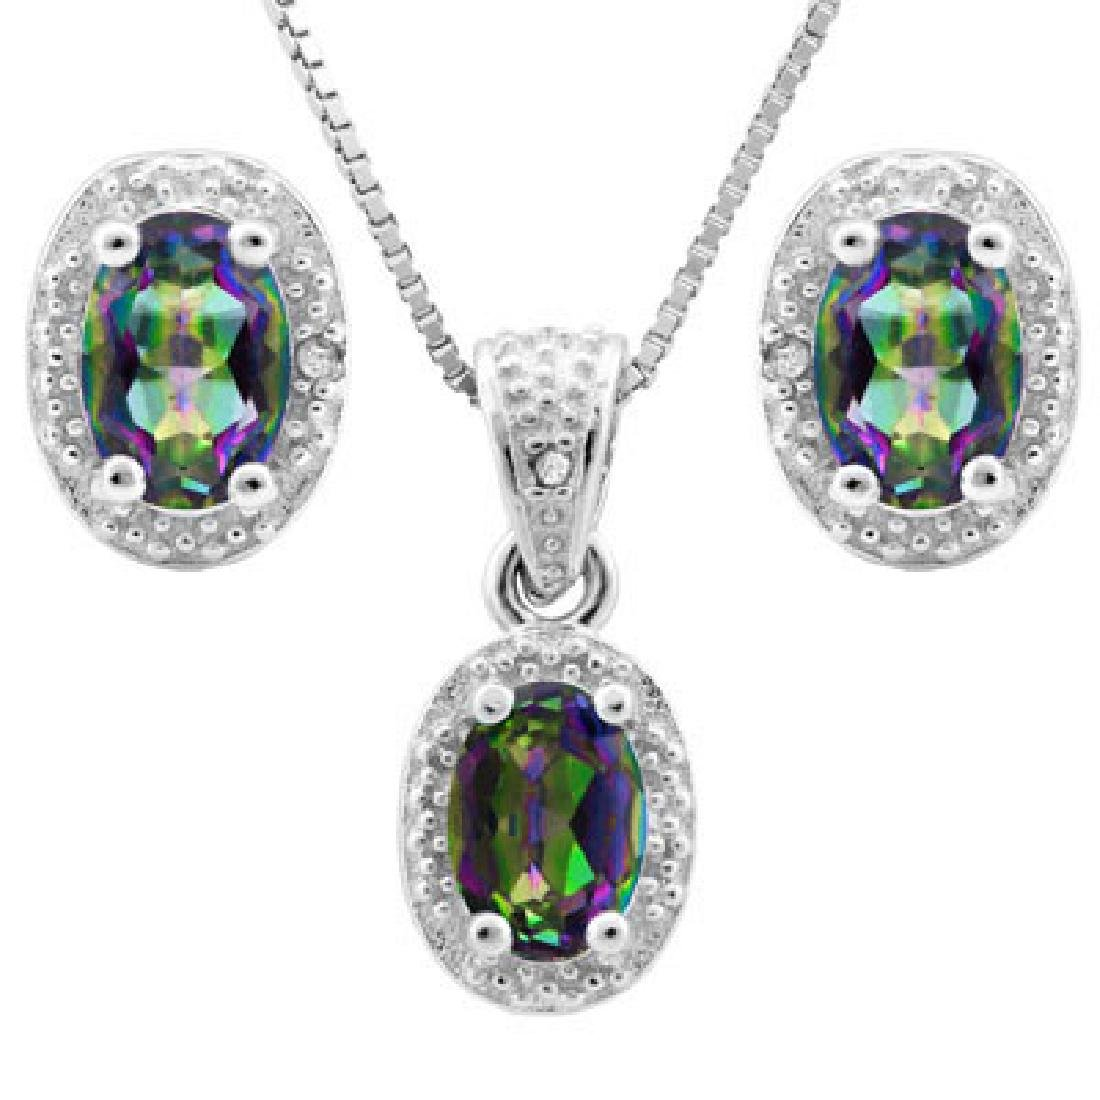 1 4/5 CARAT OCEAN MYSTIC GEMSTONE & DIAMOND 925 STERLIN